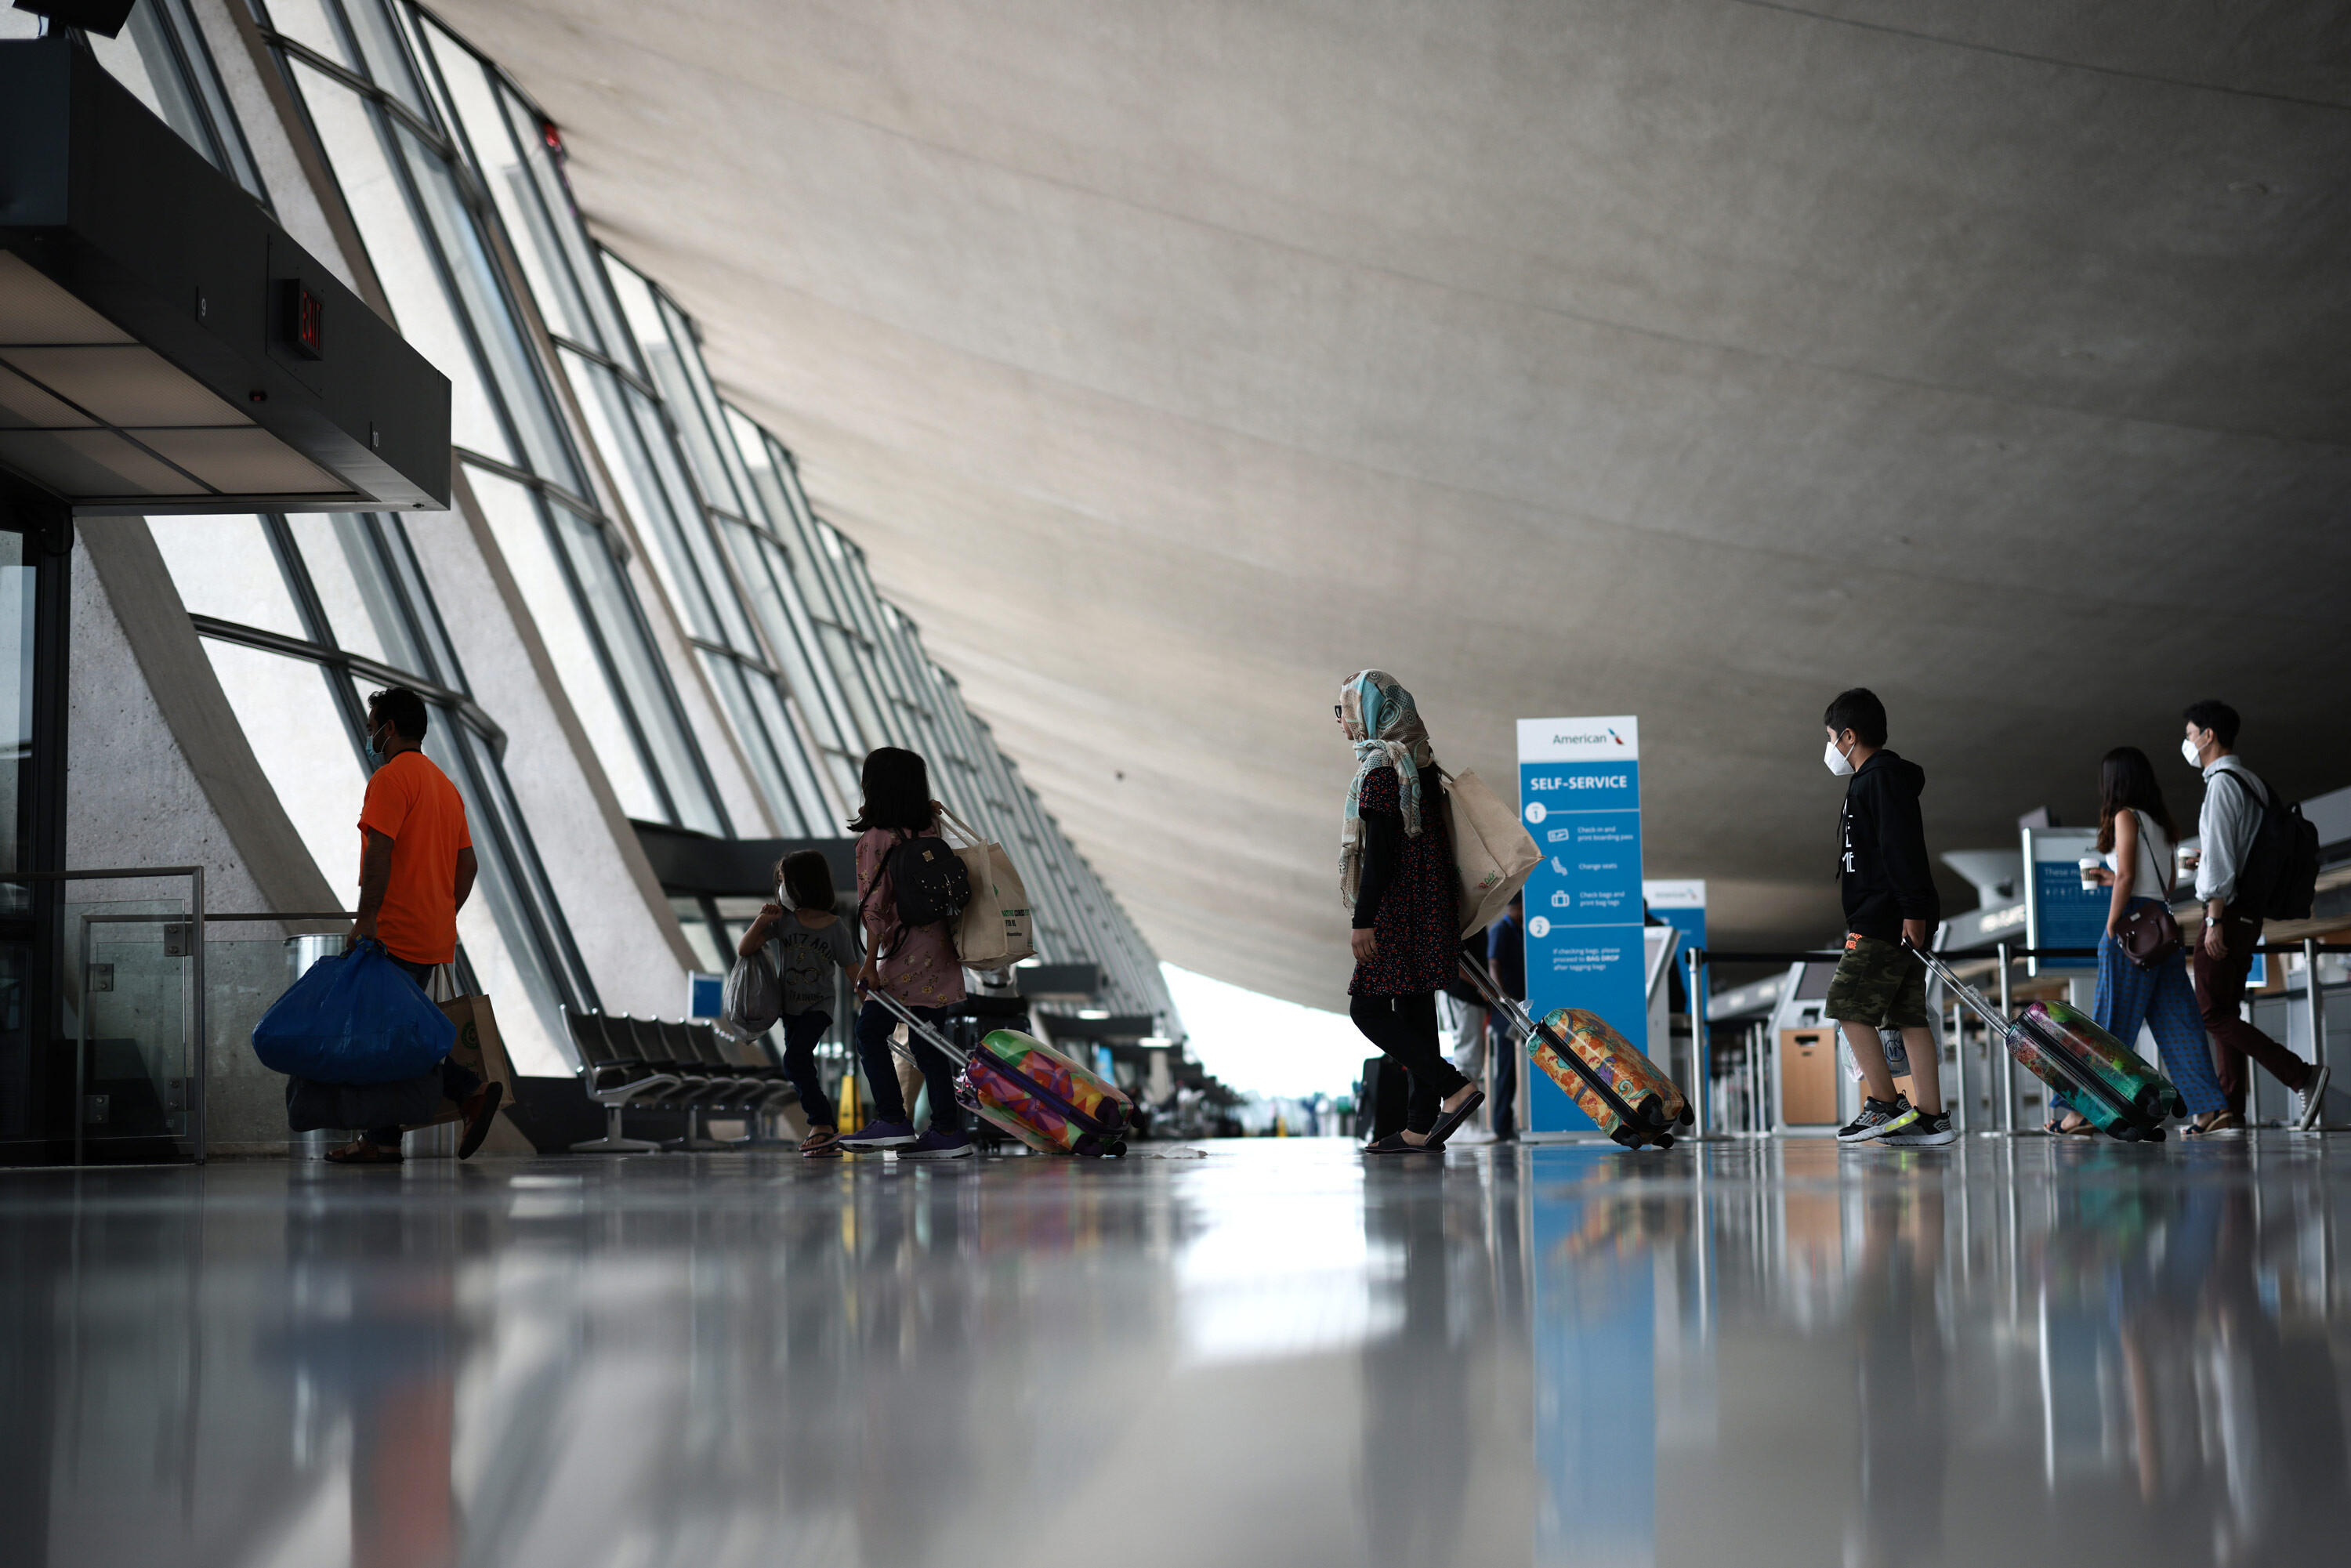 Refugee admissions to US the lowest in 40 years